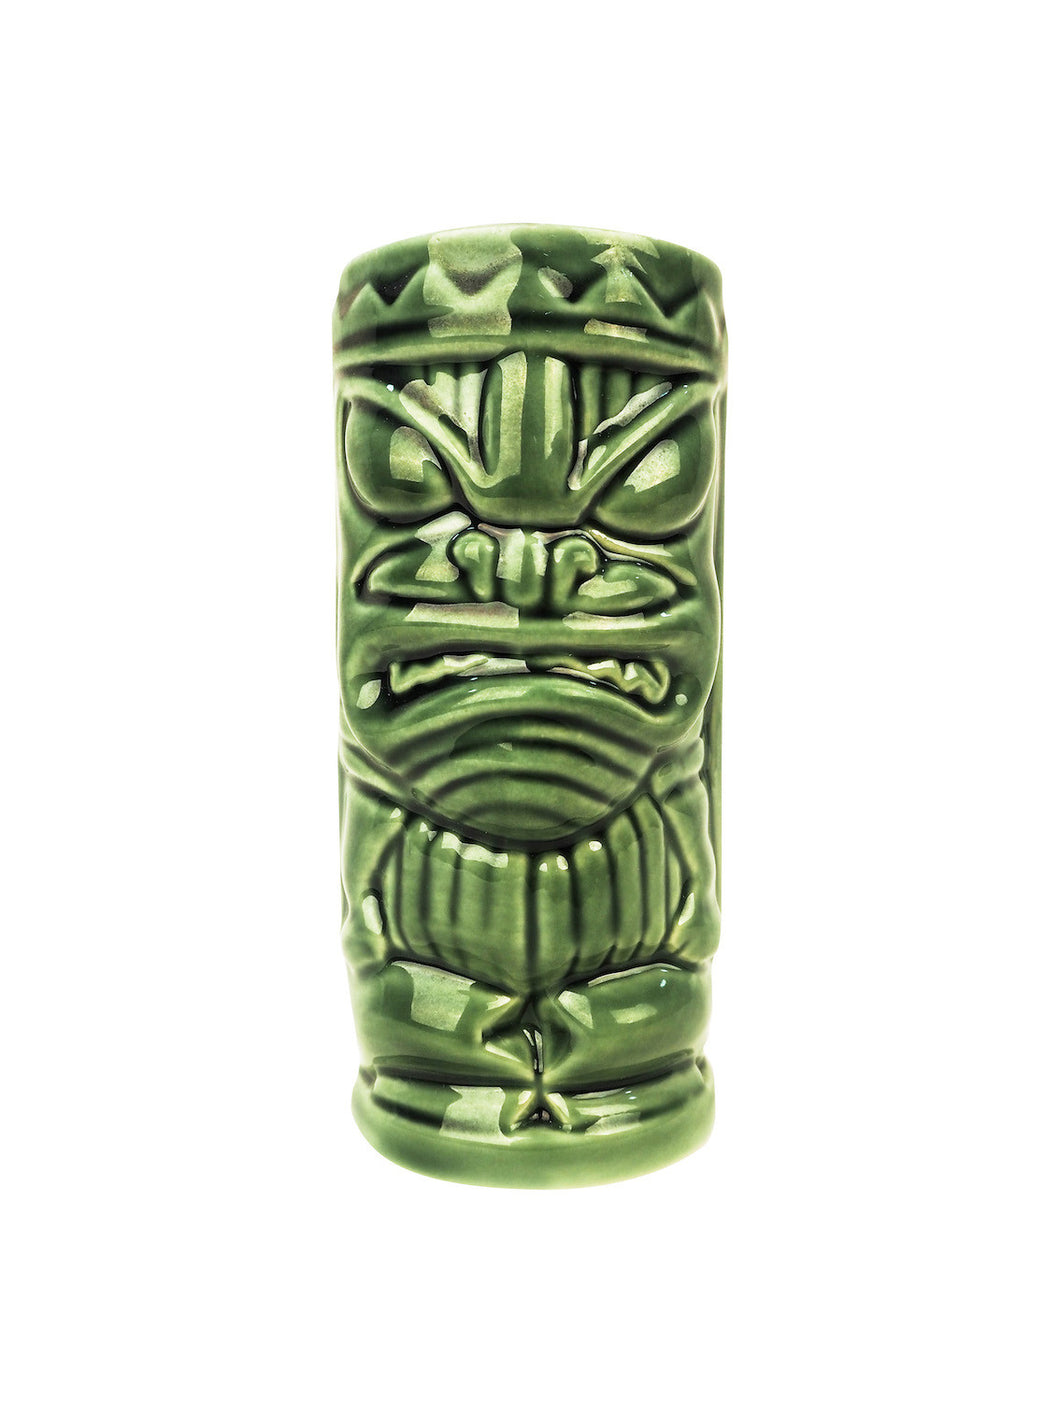 Tiki Mug - Meanie 360ml | Glazed Ceramic